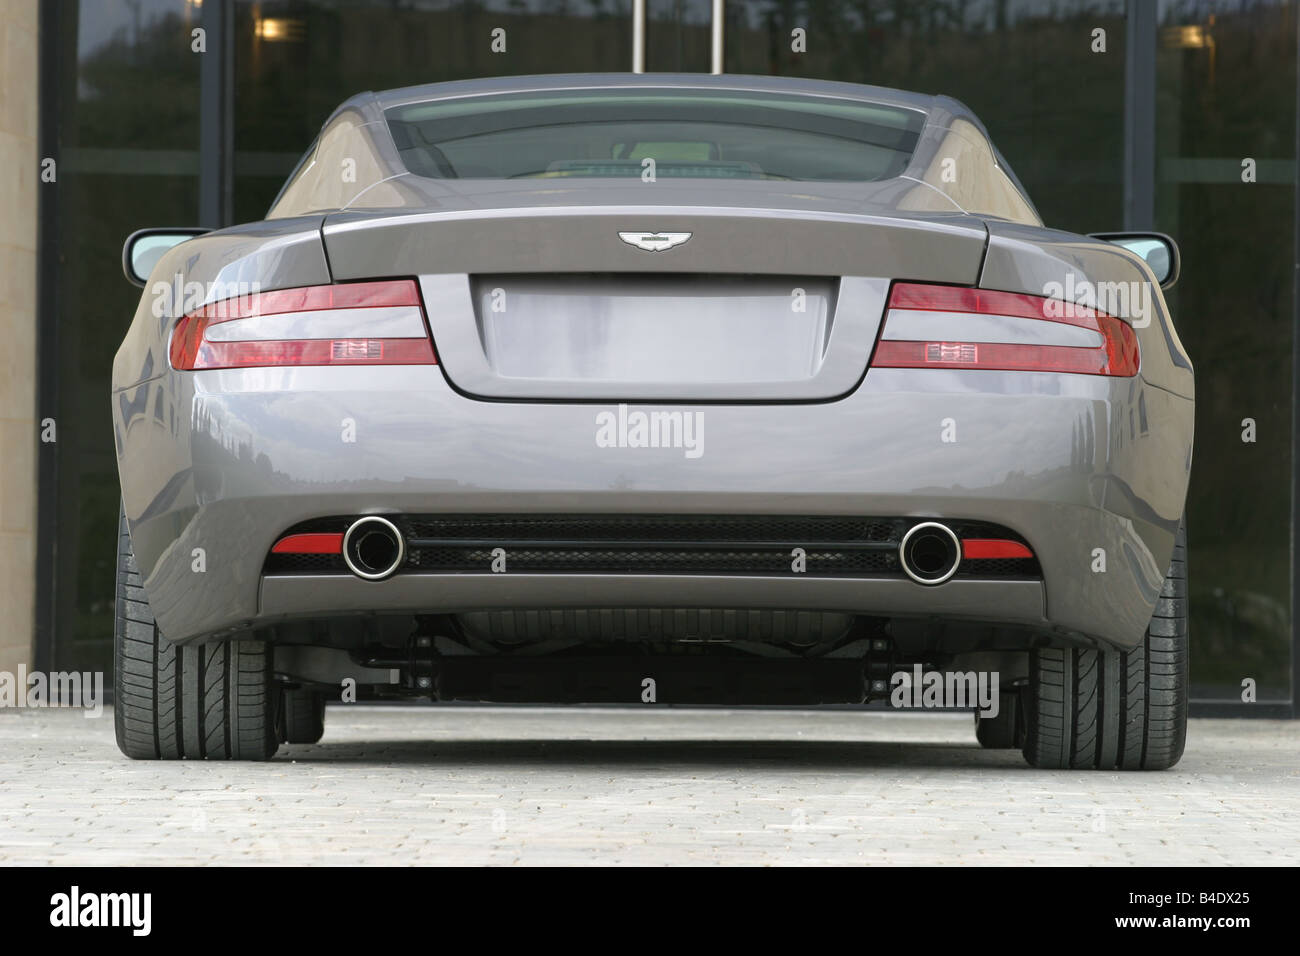 Car, Aston Martin DB9, Roadster, Coupe/Coupe, Silver Anthracite, Model Year  2003 , Driving, Standing, Upholding, Diagonal From T